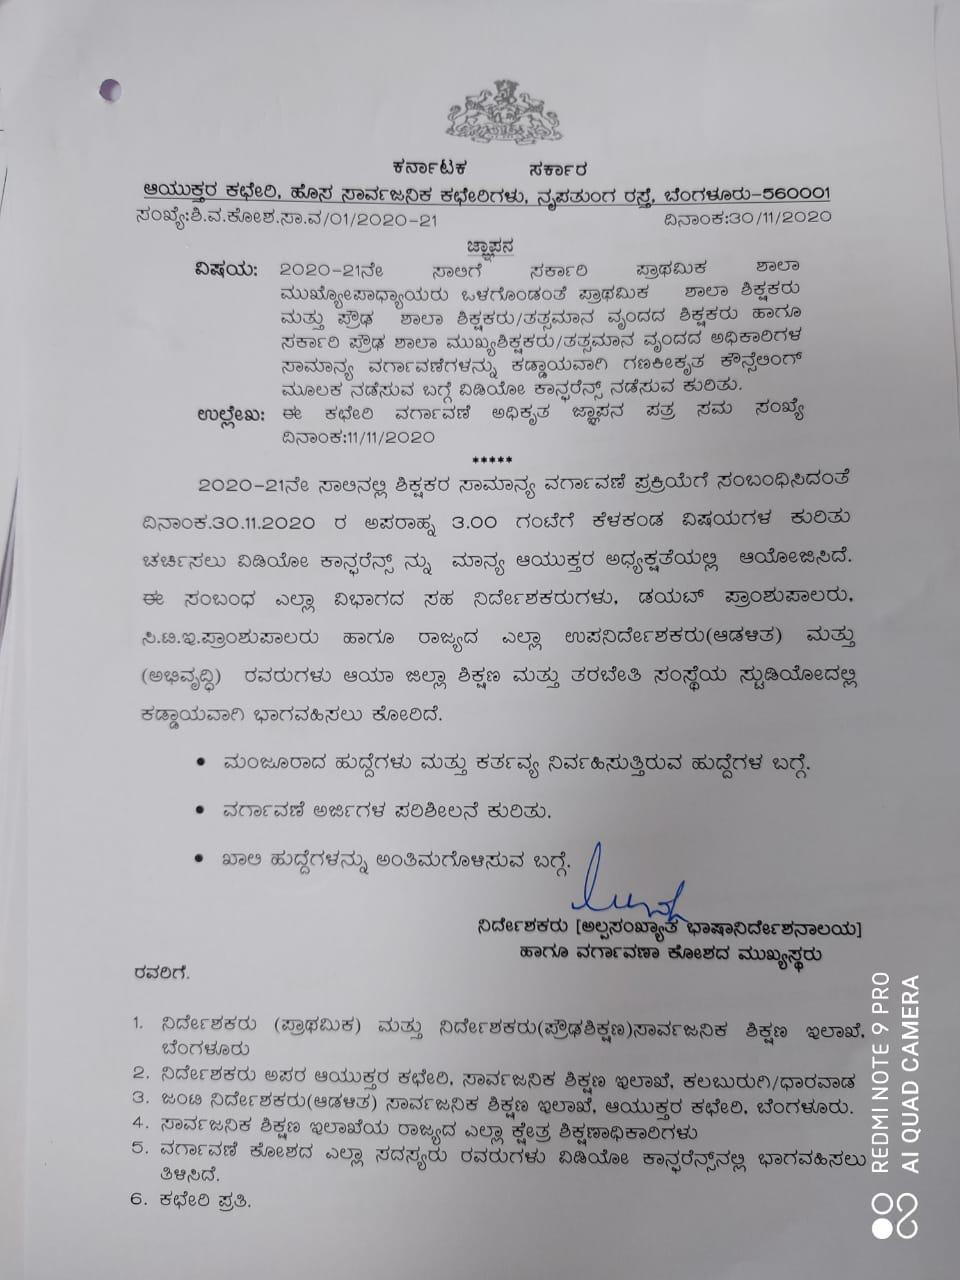 General Transfers of Primary School Head Teachers and High School Teachers / Surveyors and Government High School Head Teachers, including Government Primary School Head Teachers, who will be transferred out of Taluka / District by 2019-20